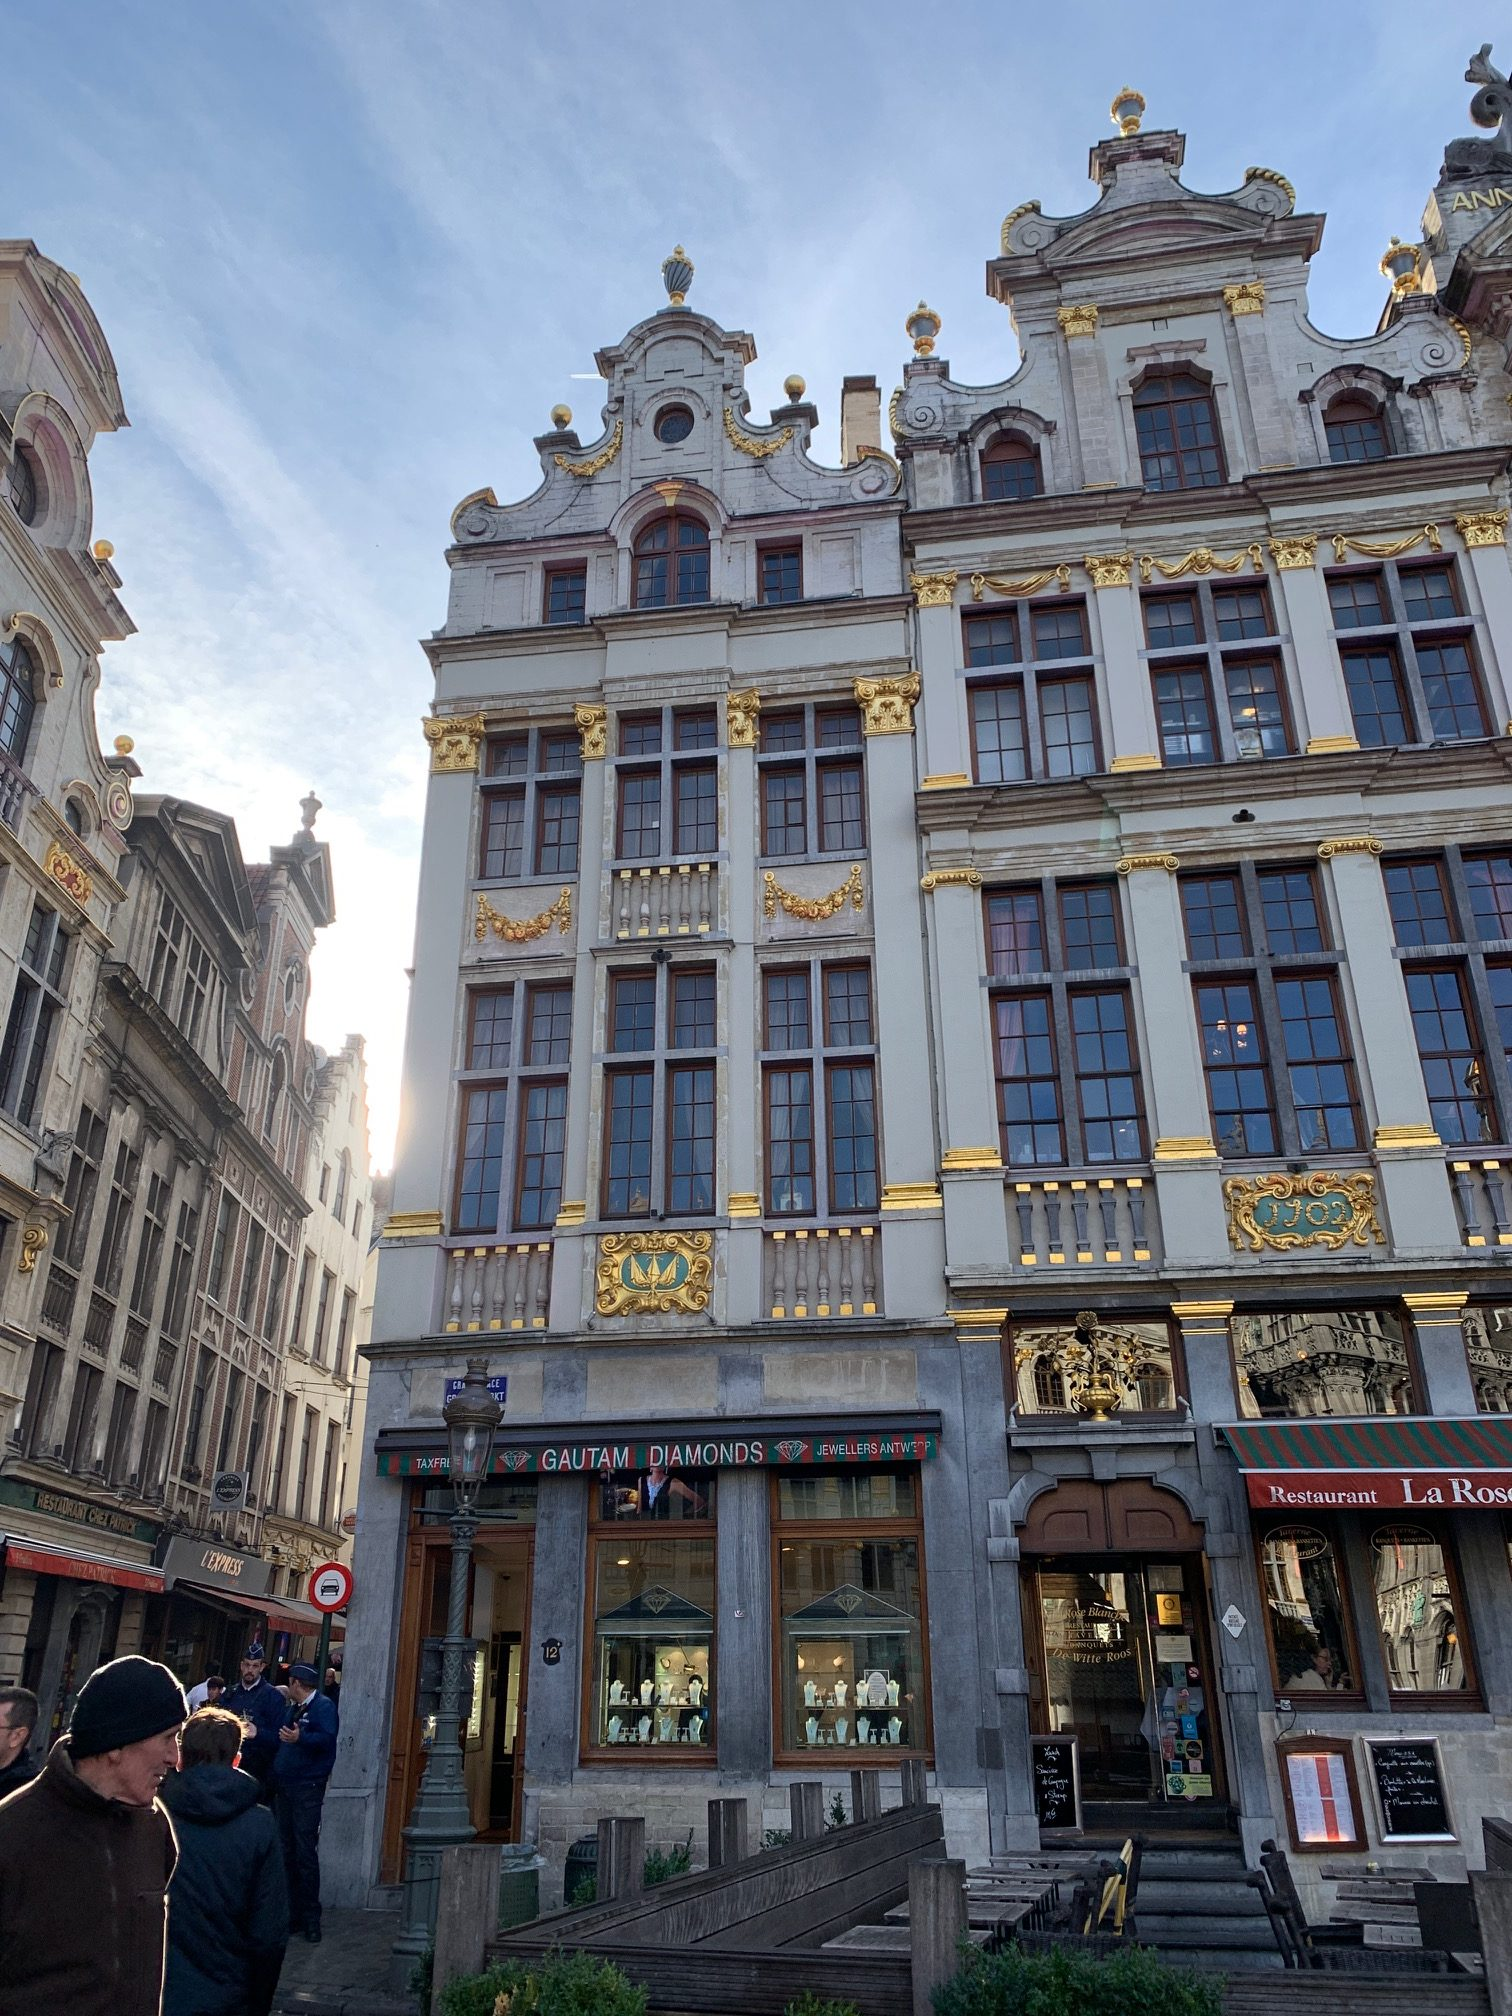 There are buildings with intricate detailing and people in the picture.